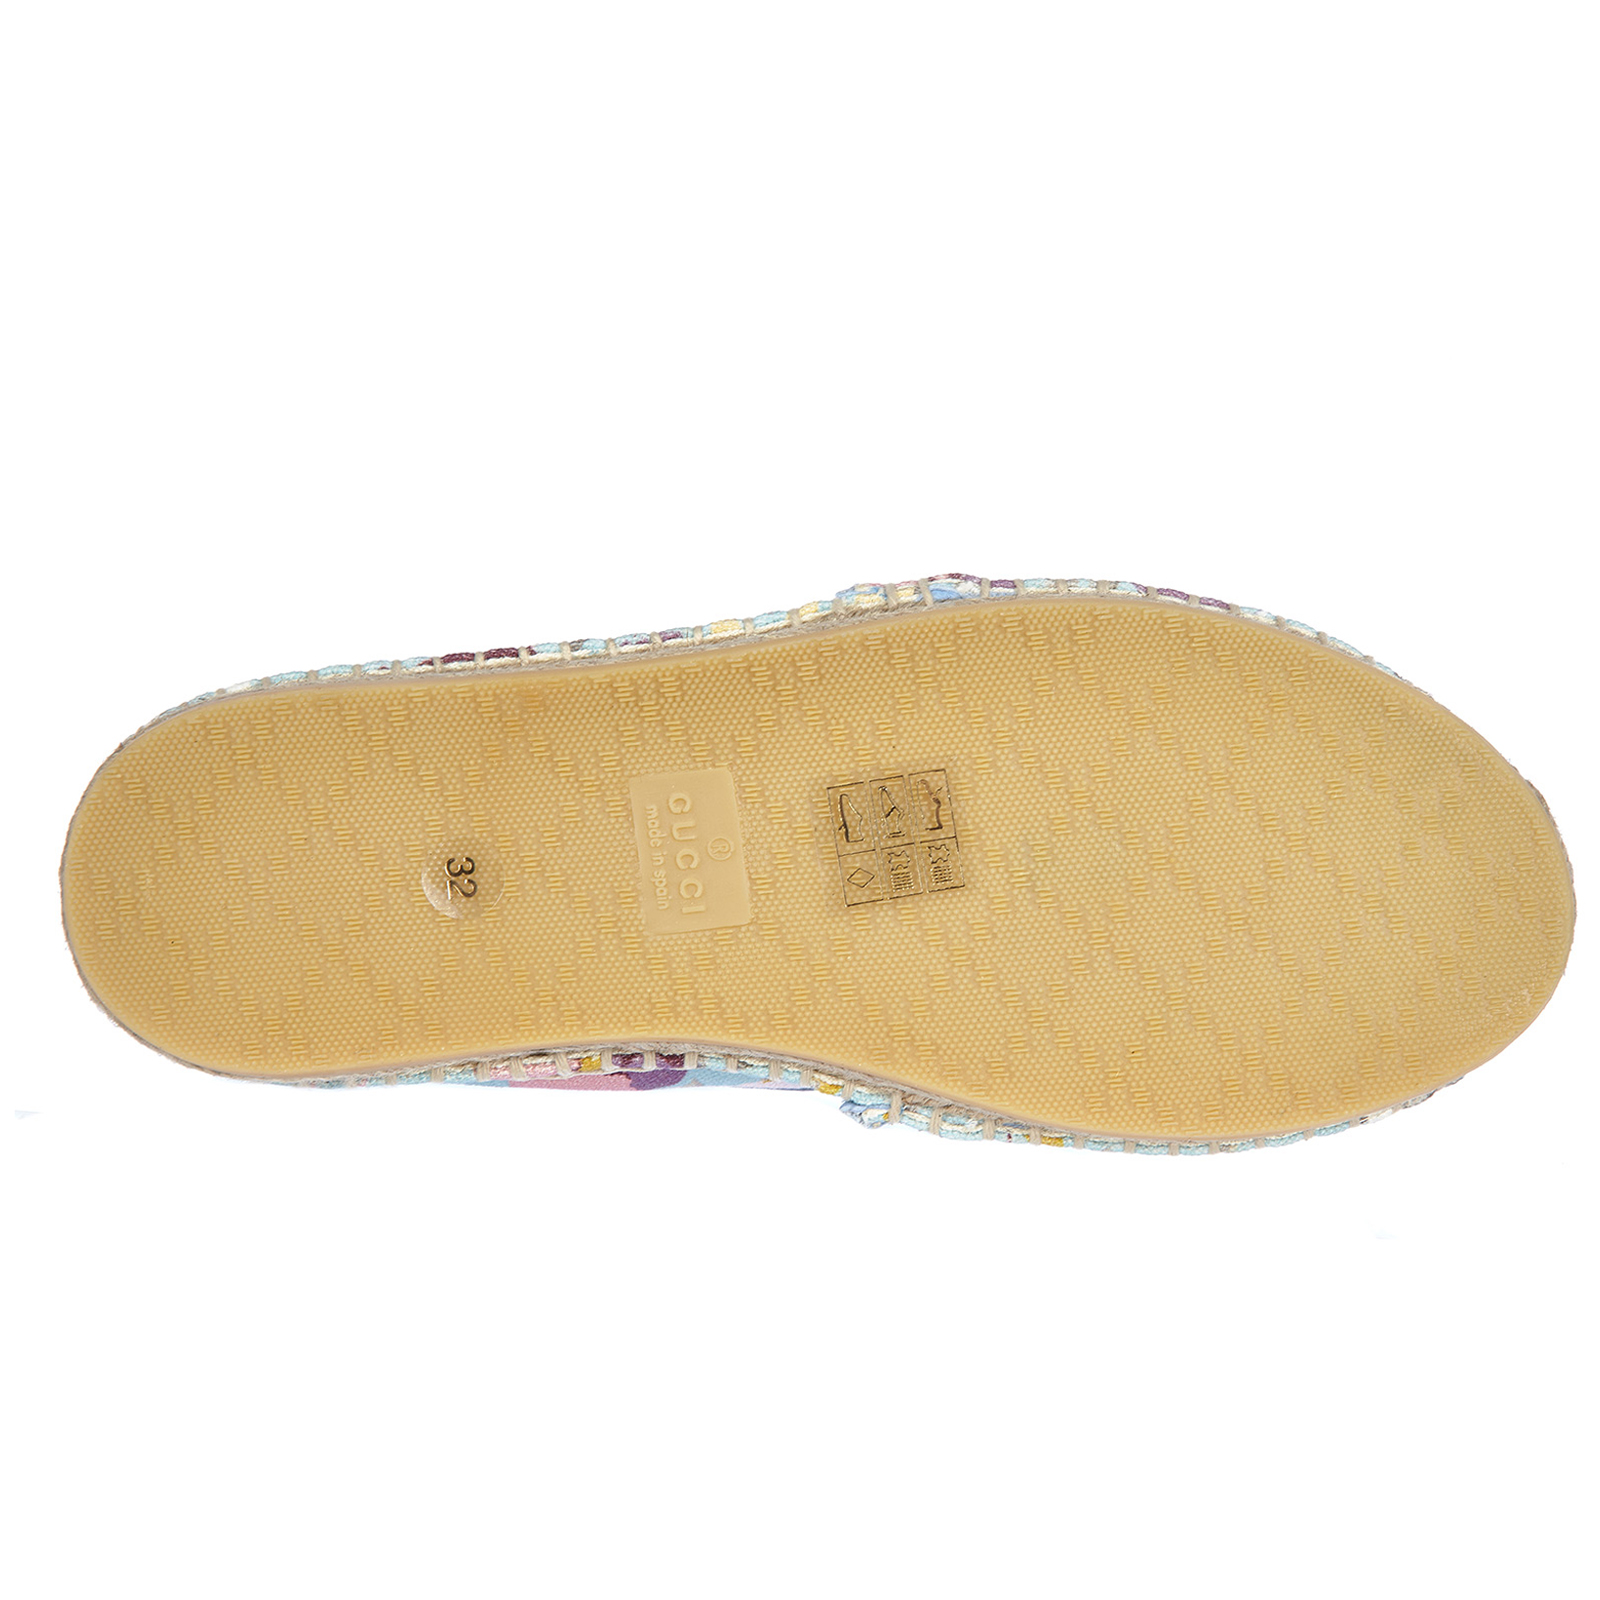 Girls espadrilles slip on shoes baby child cotton